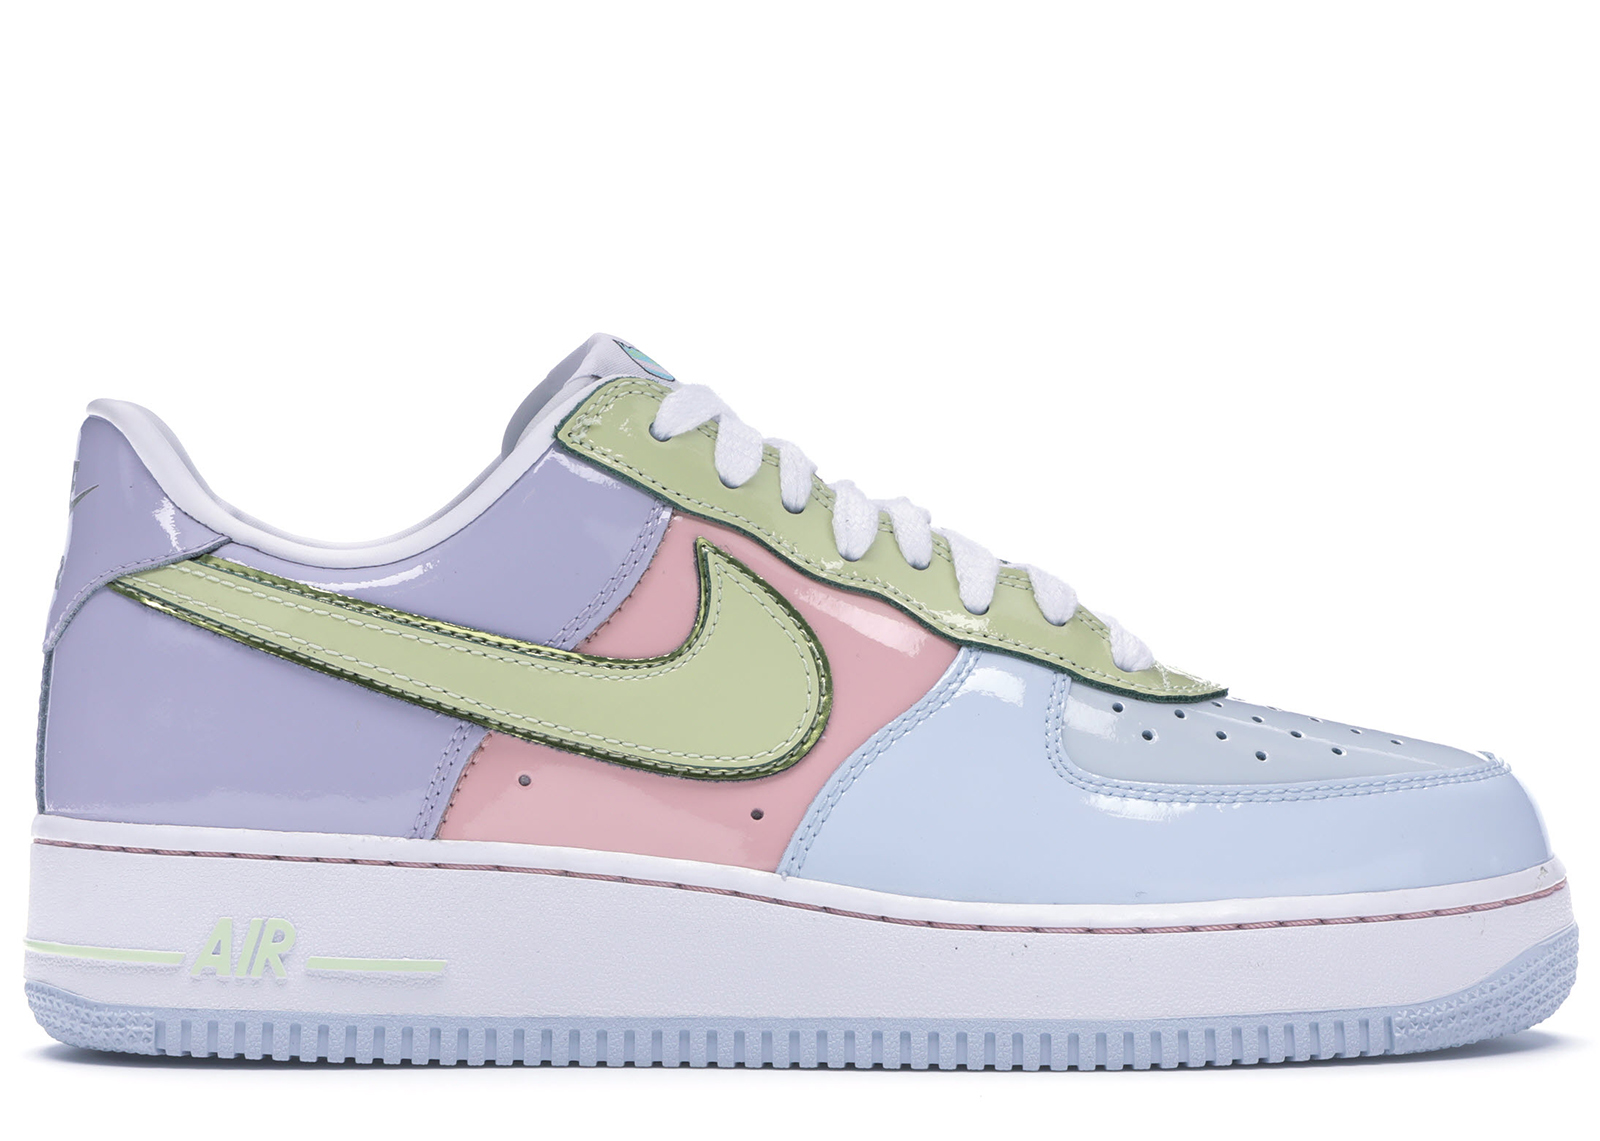 Nike Air Force 1 Low Easter 2017 - 845053-500